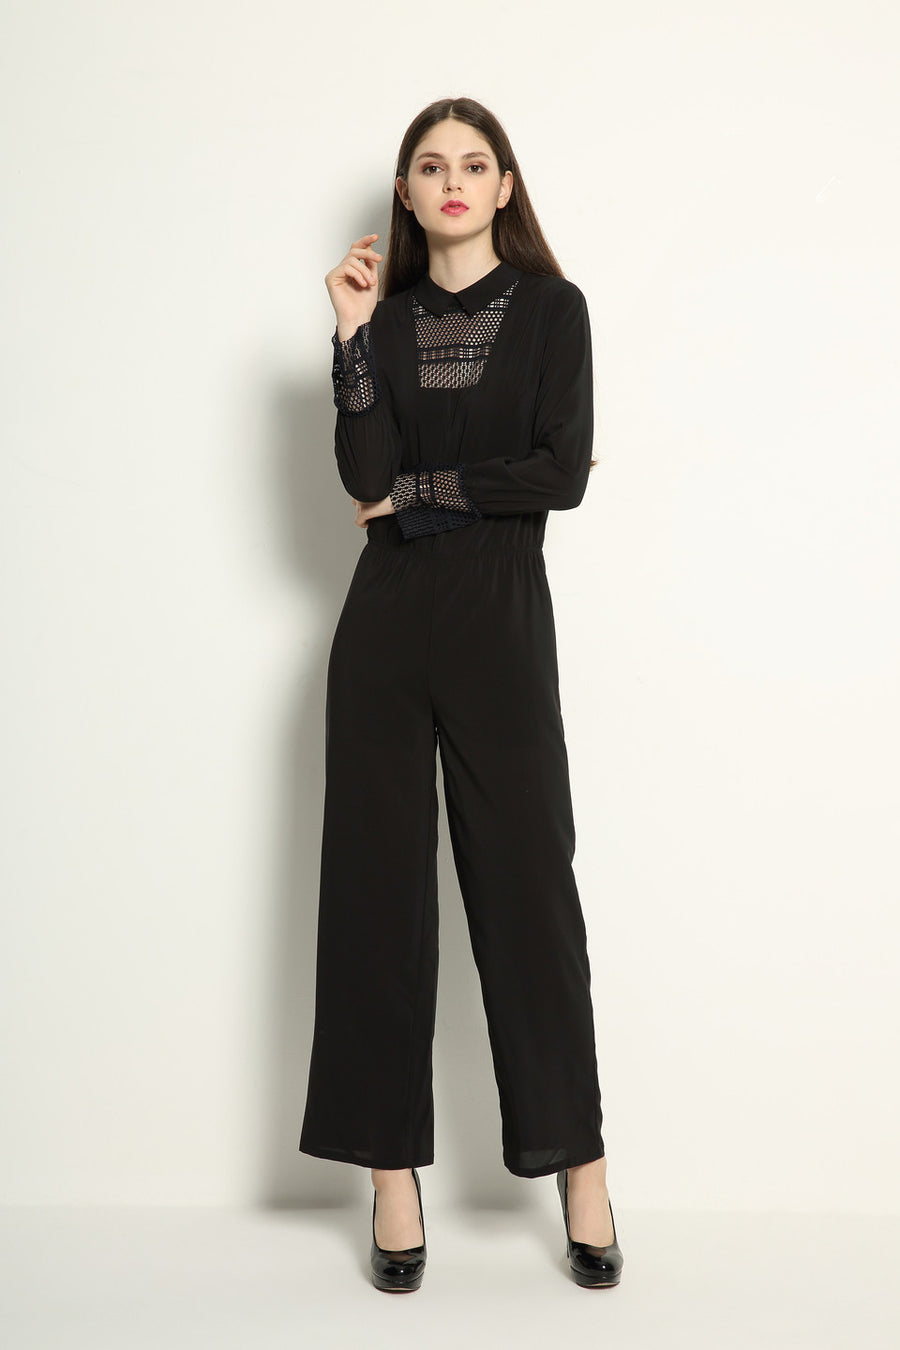 Japanese Lace Detail Jumpsuit - GlanceZ   - 1